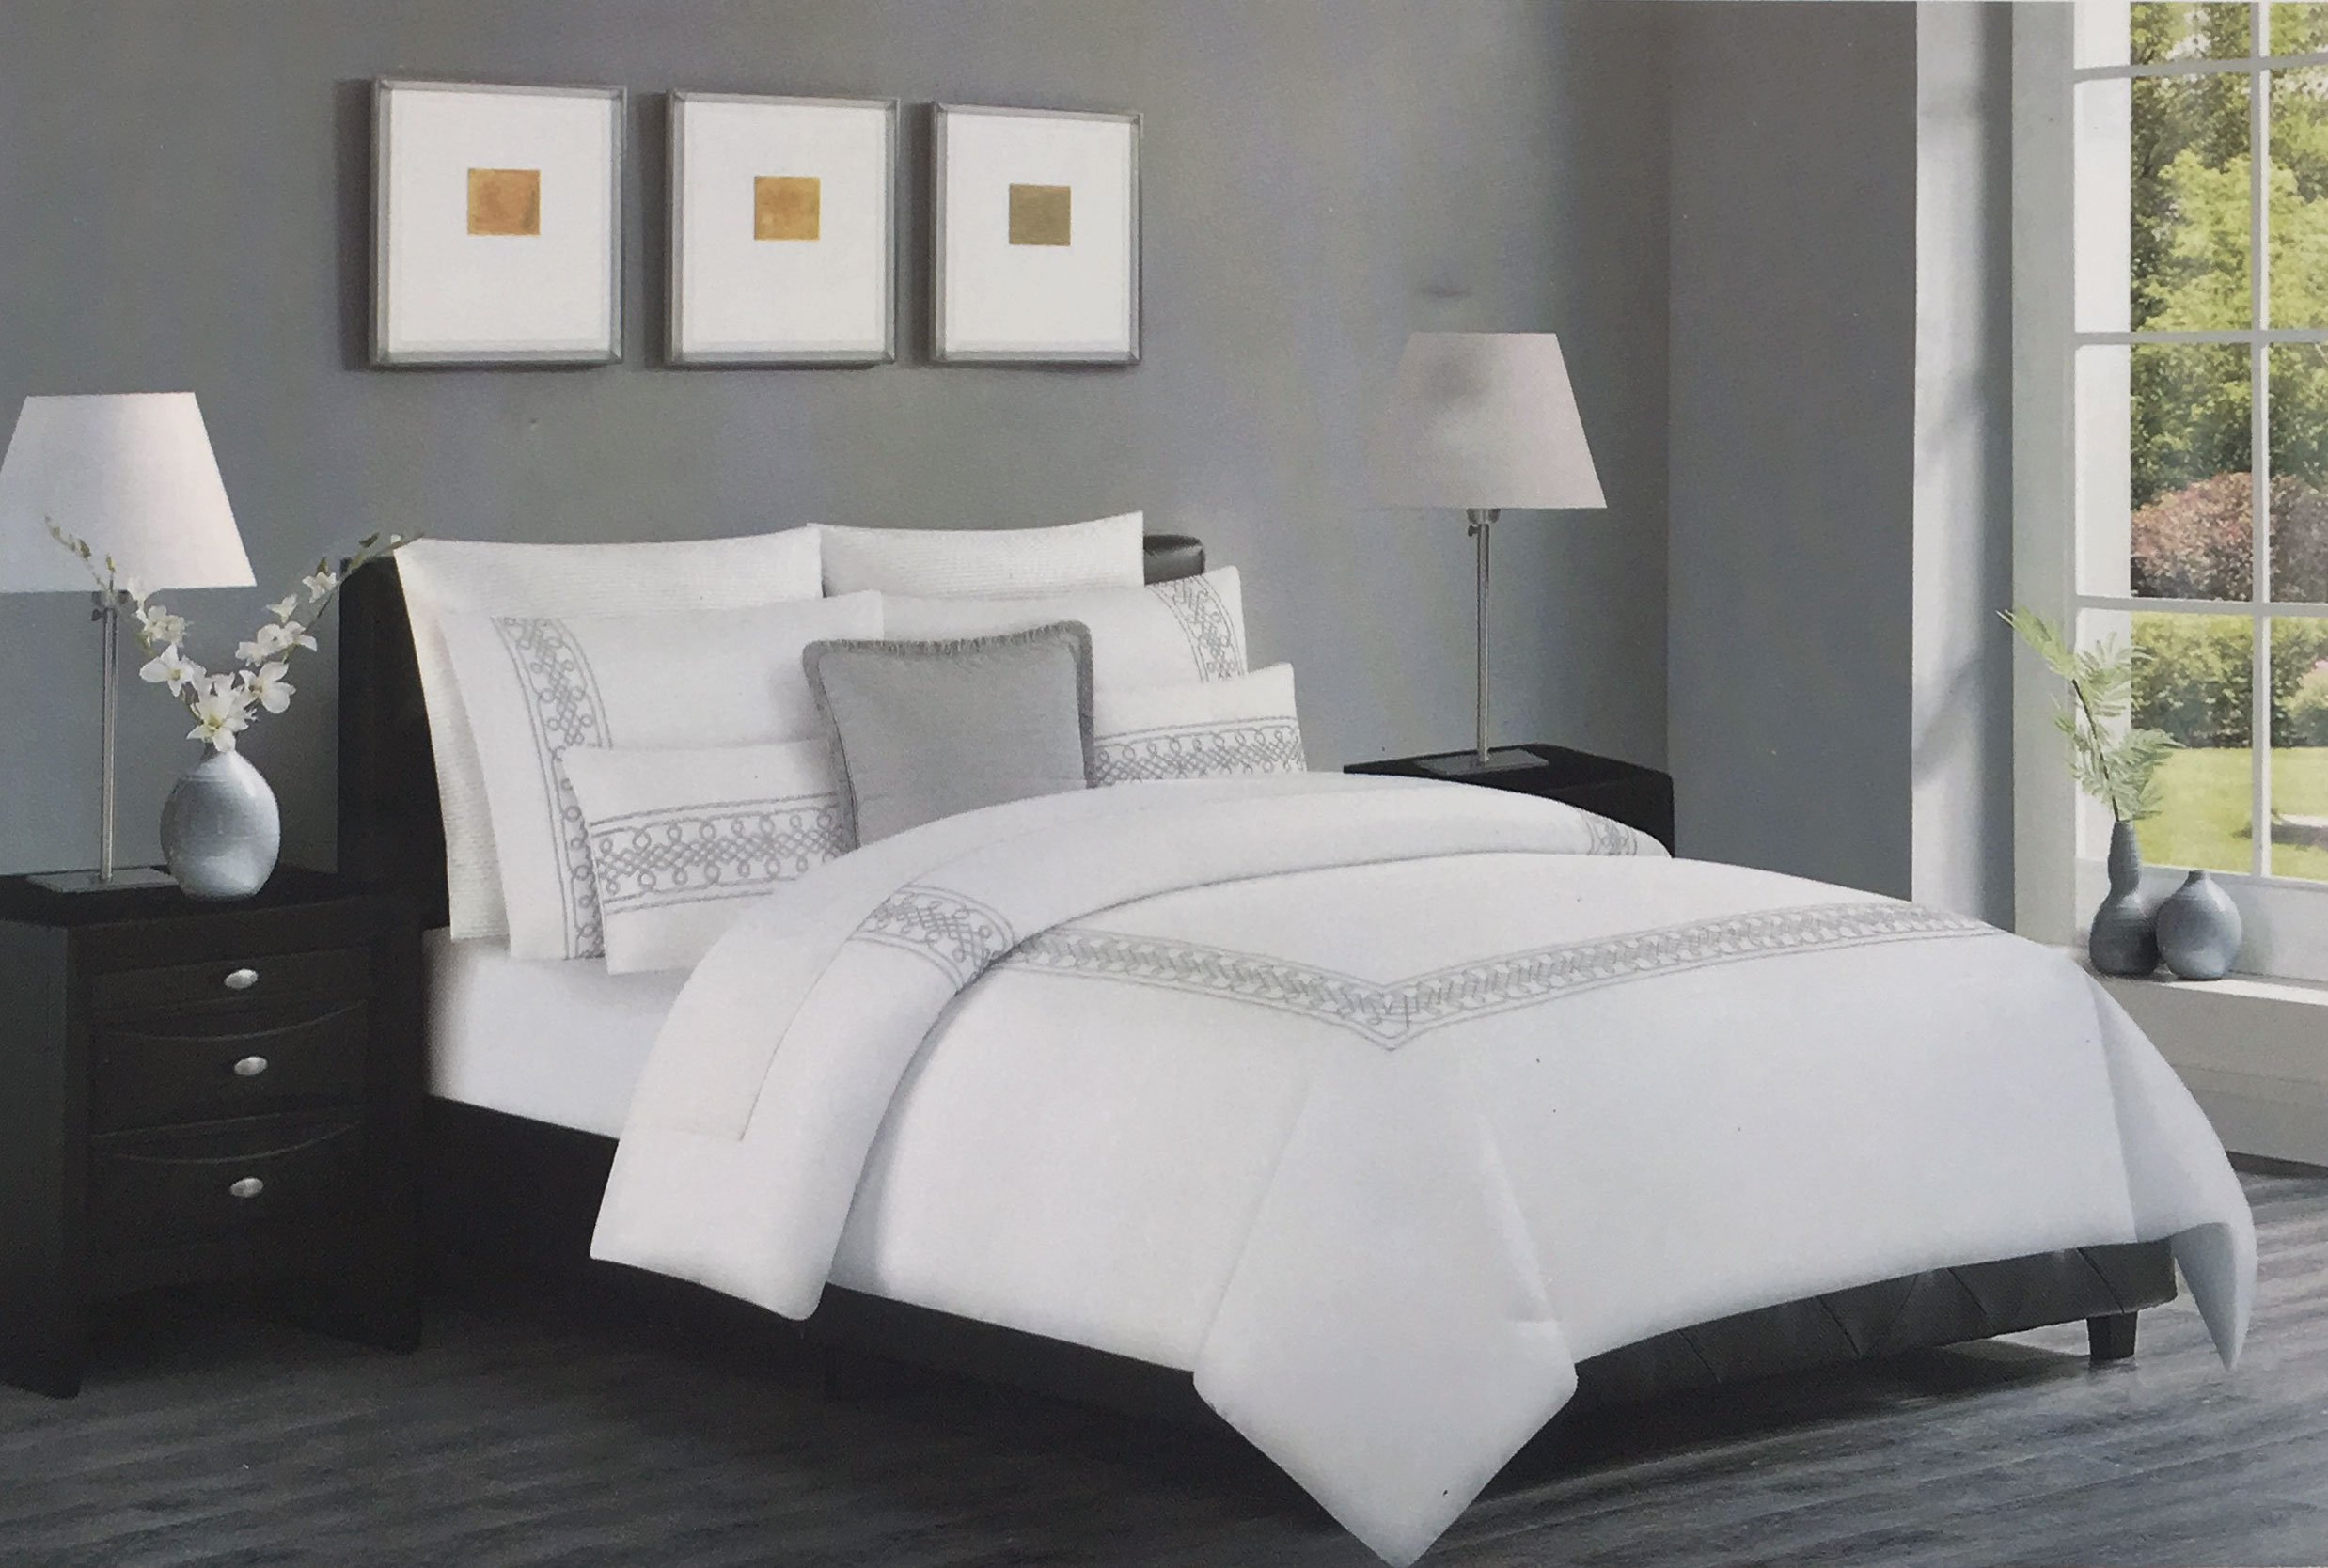 Hotel Collection Bedding 3 Piece Full / Queen Size Bed Duvet Cover Set Embroidered Metallic Silver Gray Thread Geometric Border Stripe on White